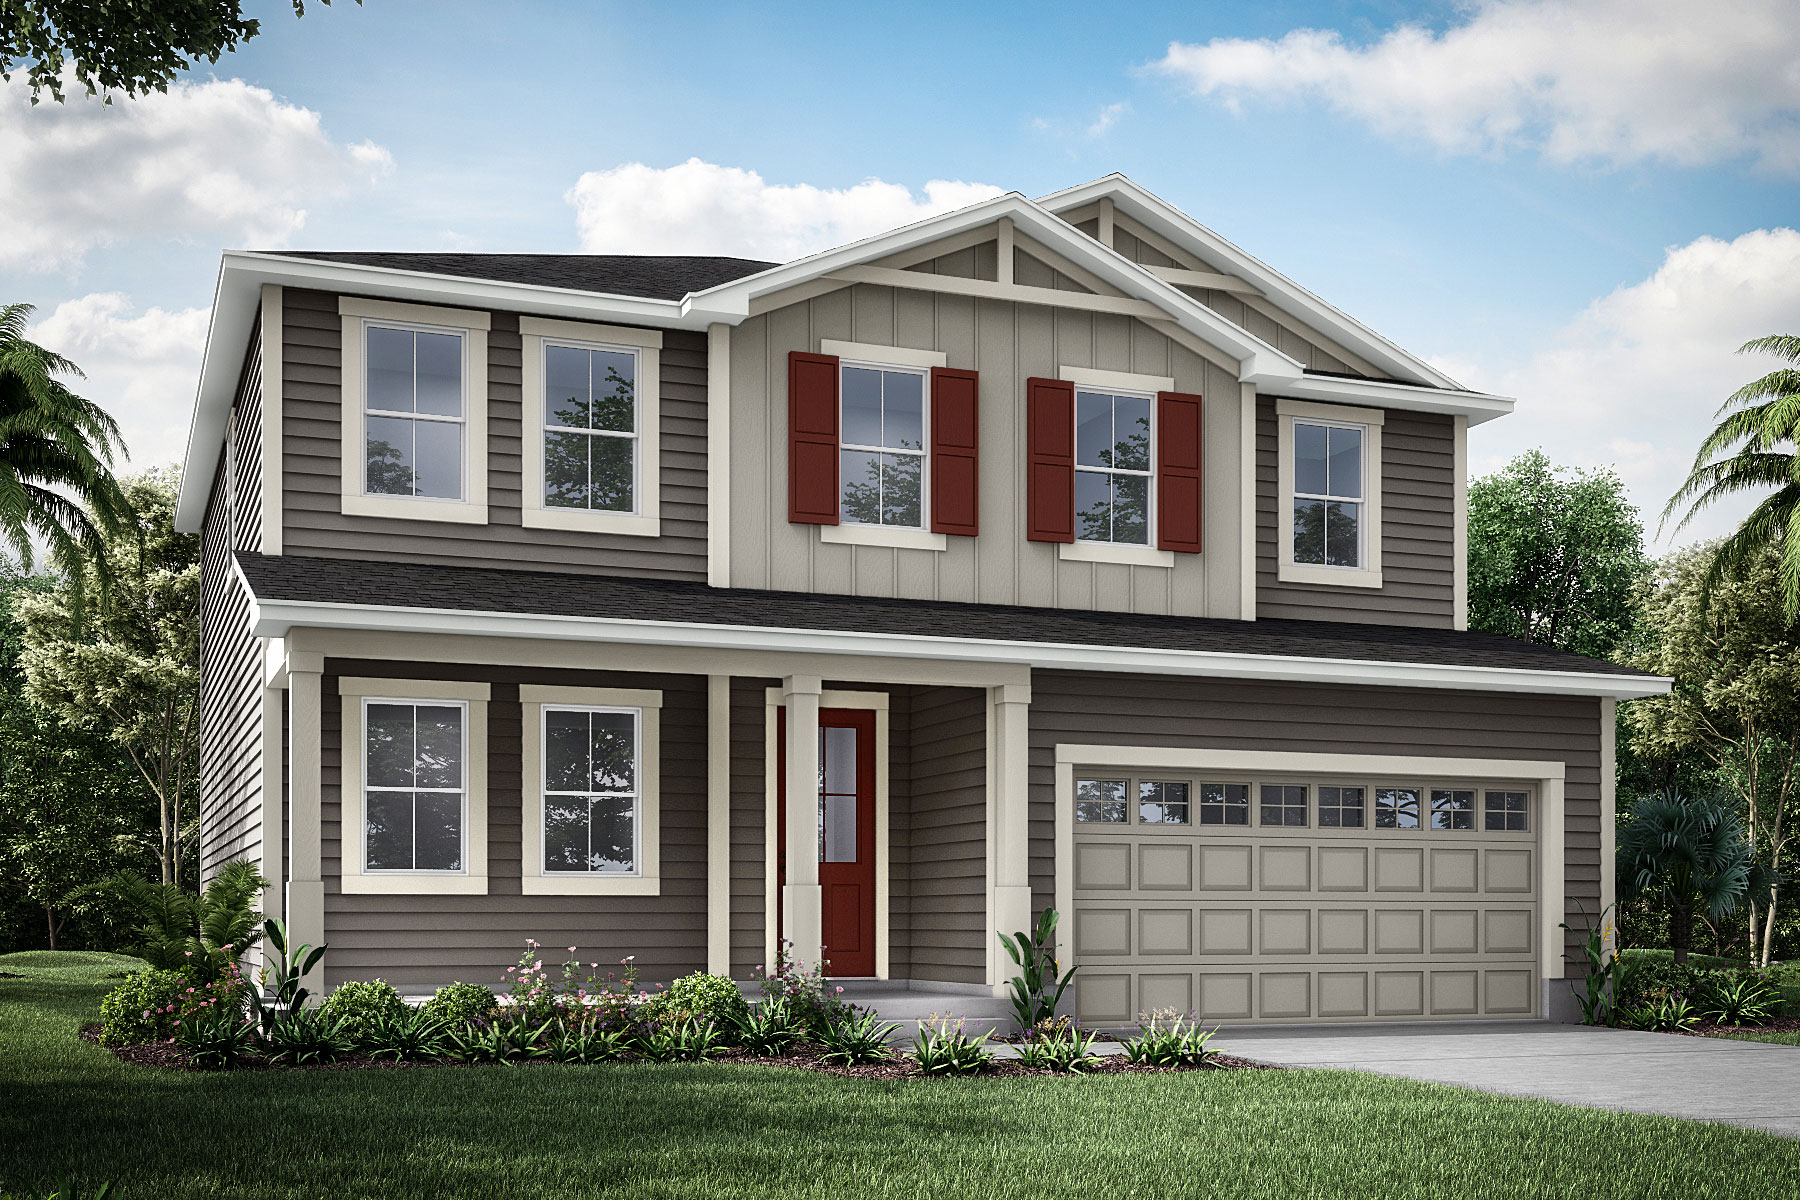 Willow Plan JAX_Wildlight_Willow_Farmhouse at Forest Park at Wildlight in Yulee Florida by Mattamy Homes